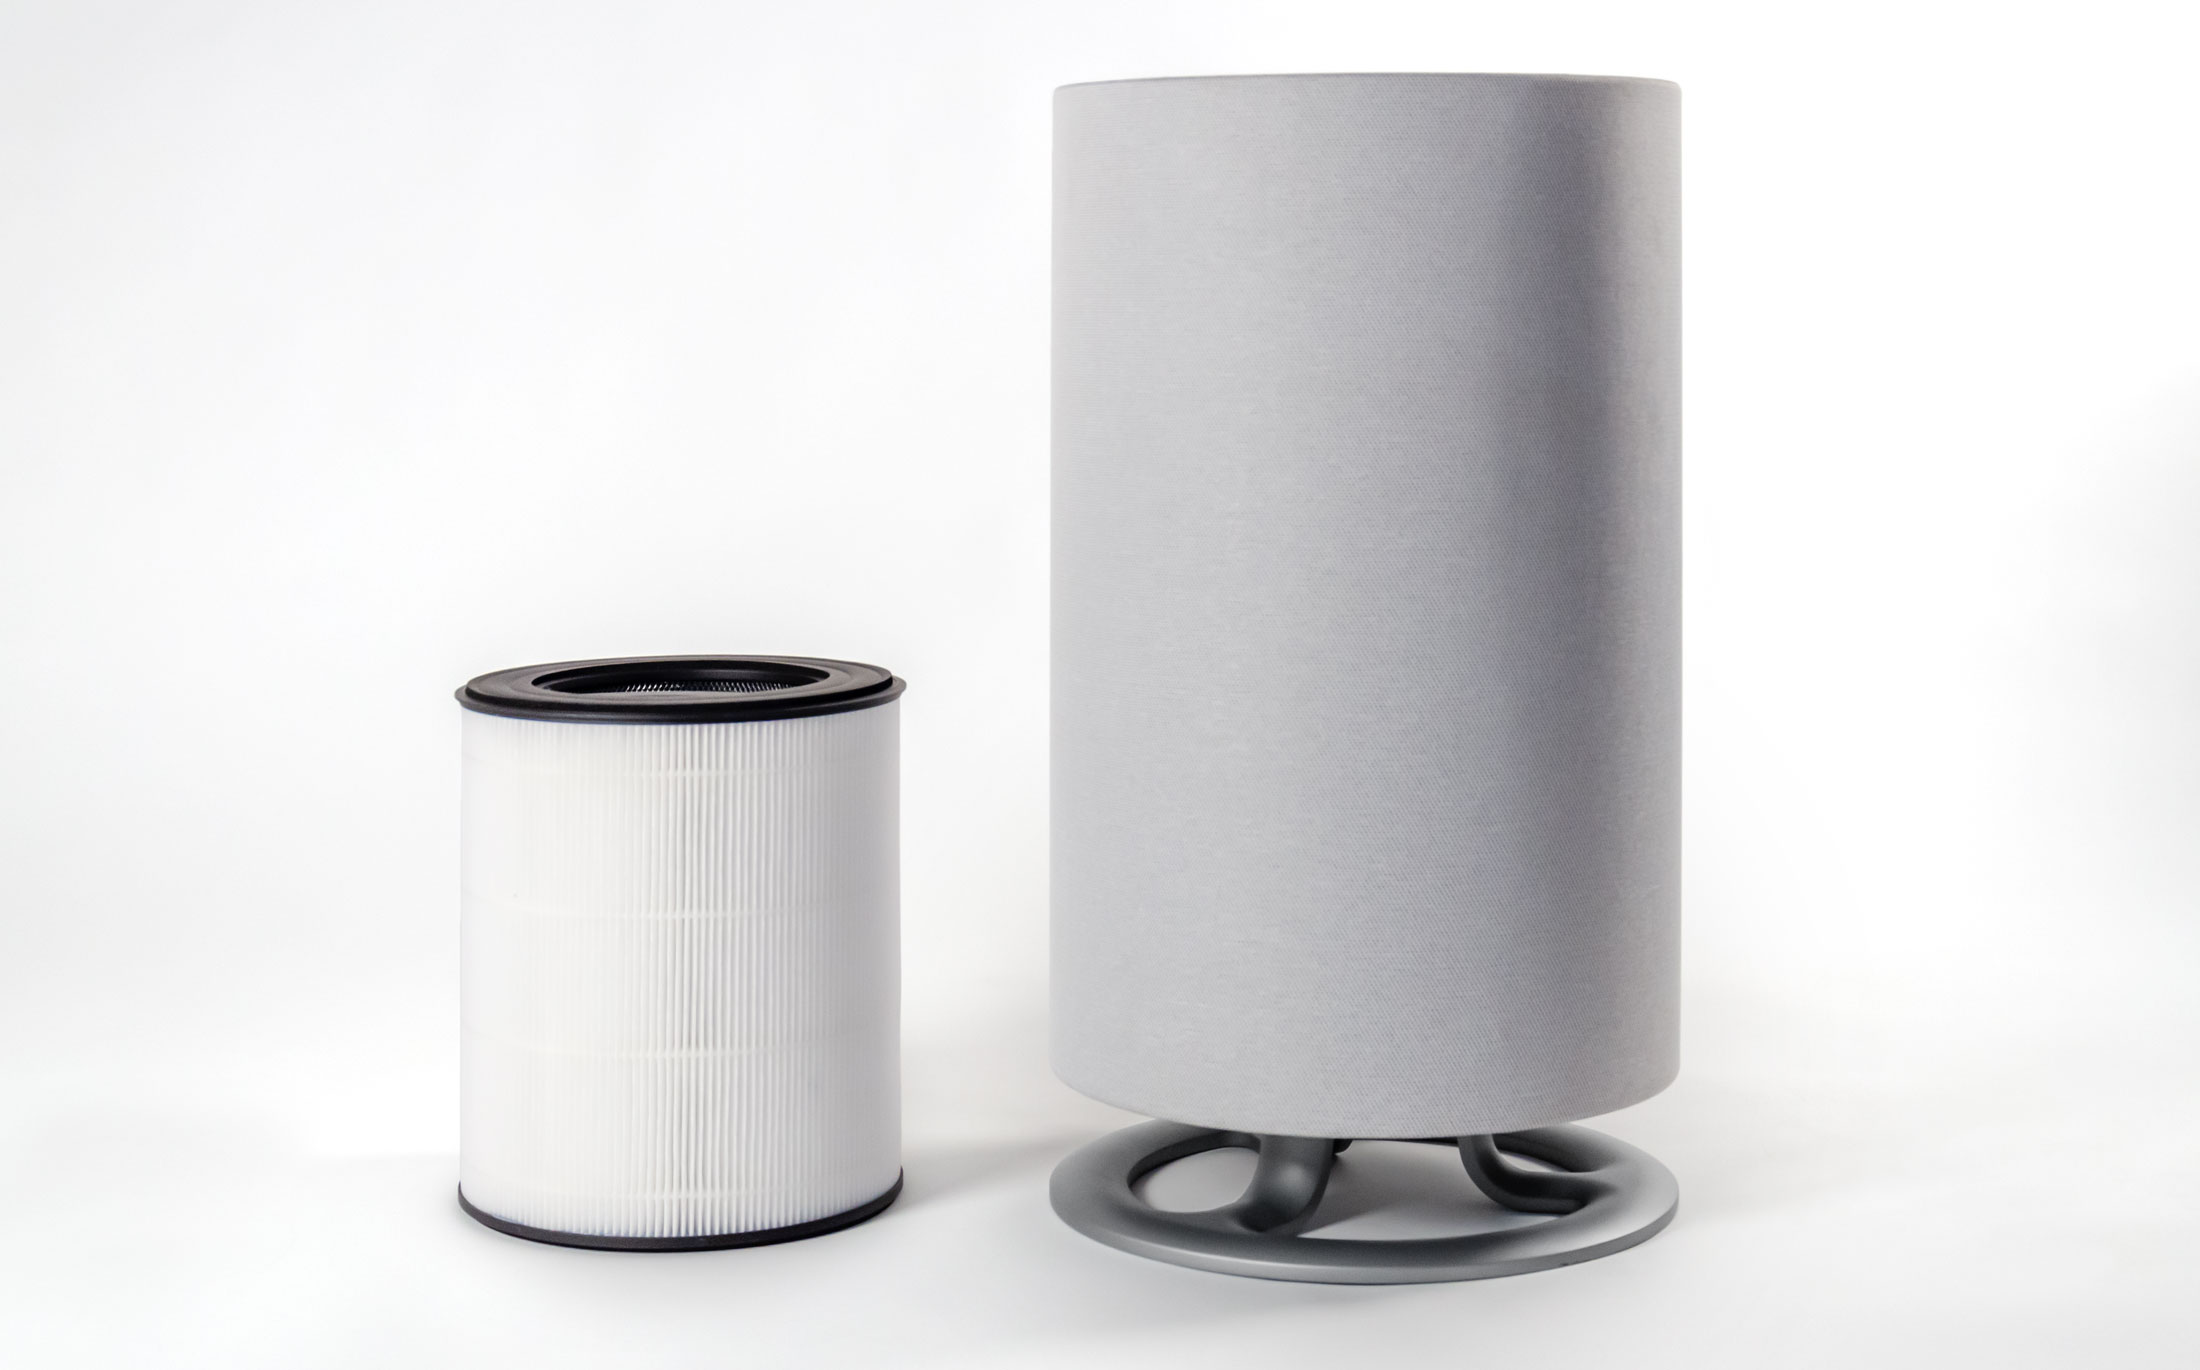 Oransi mod air purifier unit beside the filter